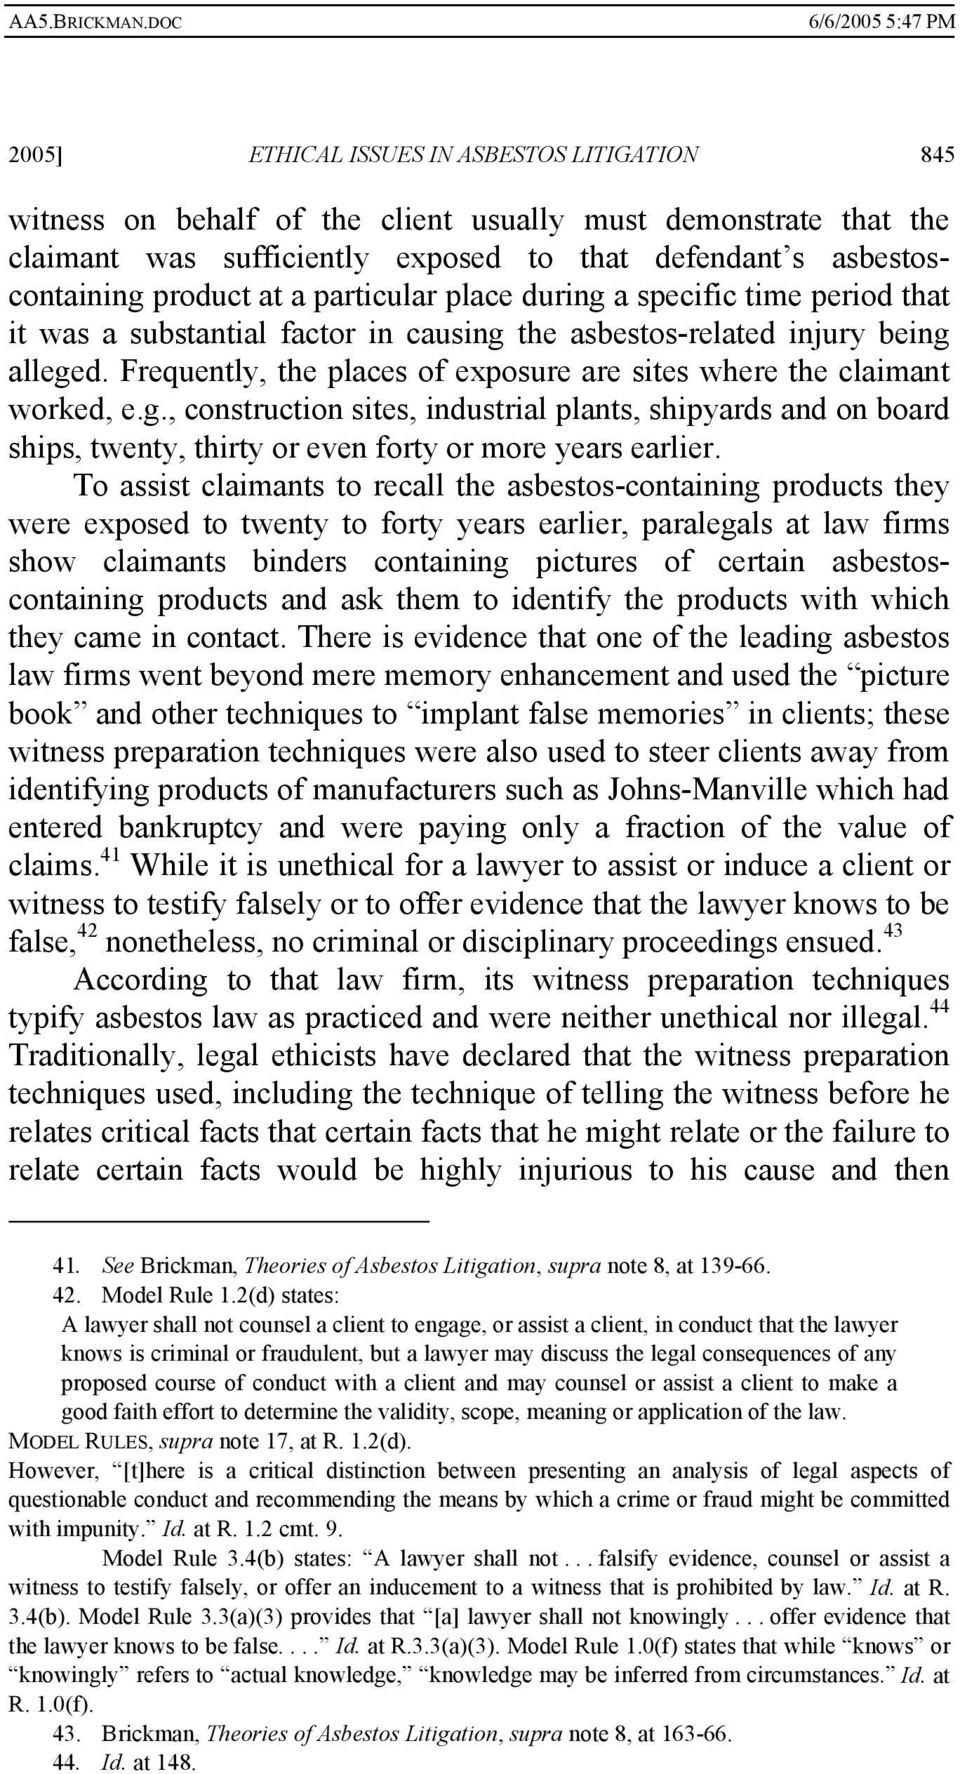 Frequently, the places of exposure are sites where the claimant worked, e.g., construction sites, industrial plants, shipyards and on board ships, twenty, thirty or even forty or more years earlier.